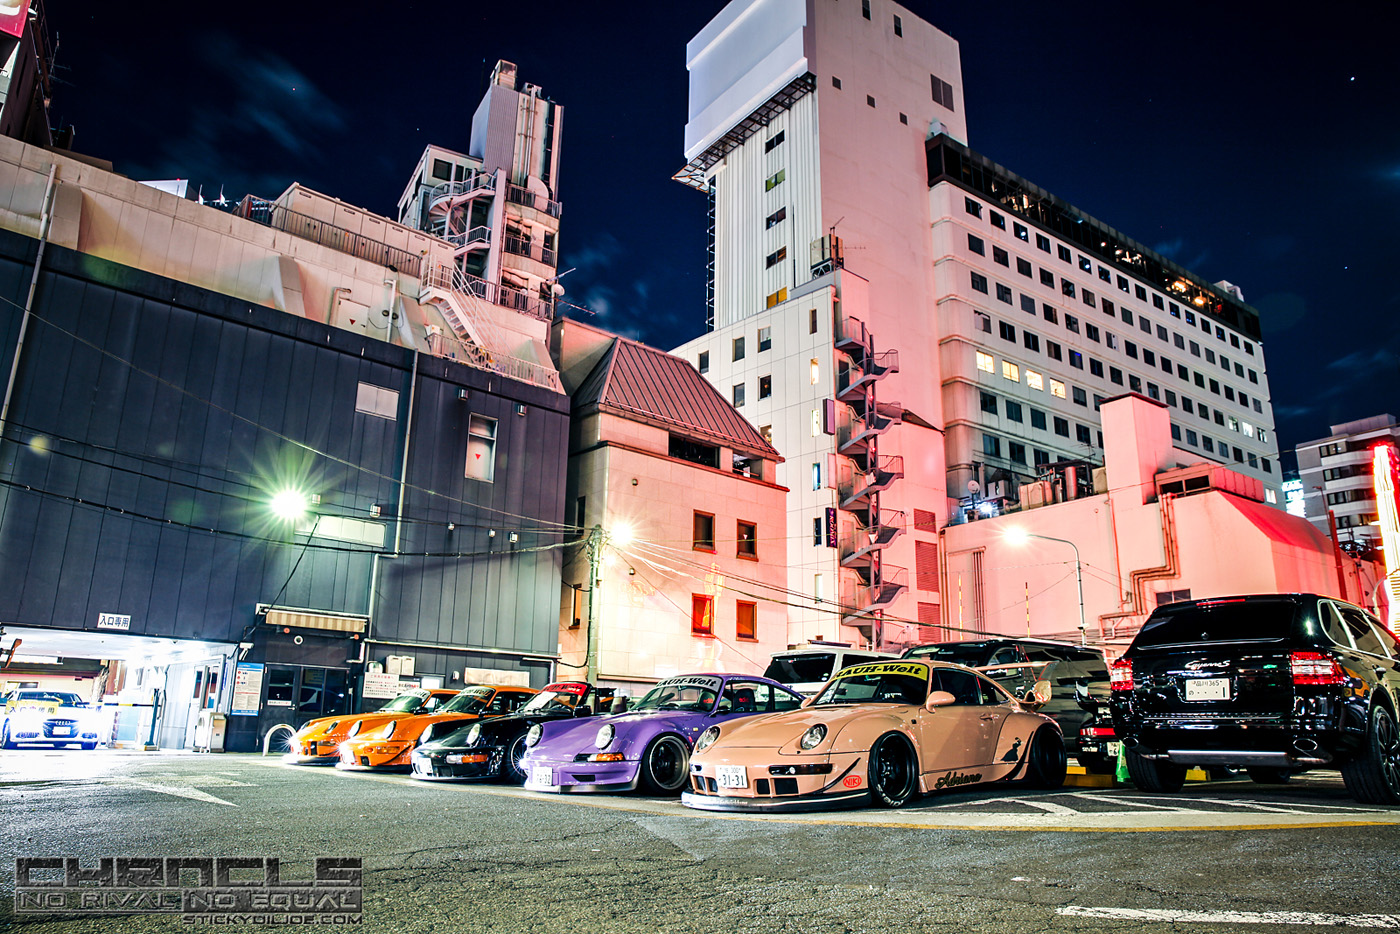 The Chronicles Tokyo 2015 Coverage…Part 1: Arrival in Japan, RWB Meet, and Day 1 of TAS…